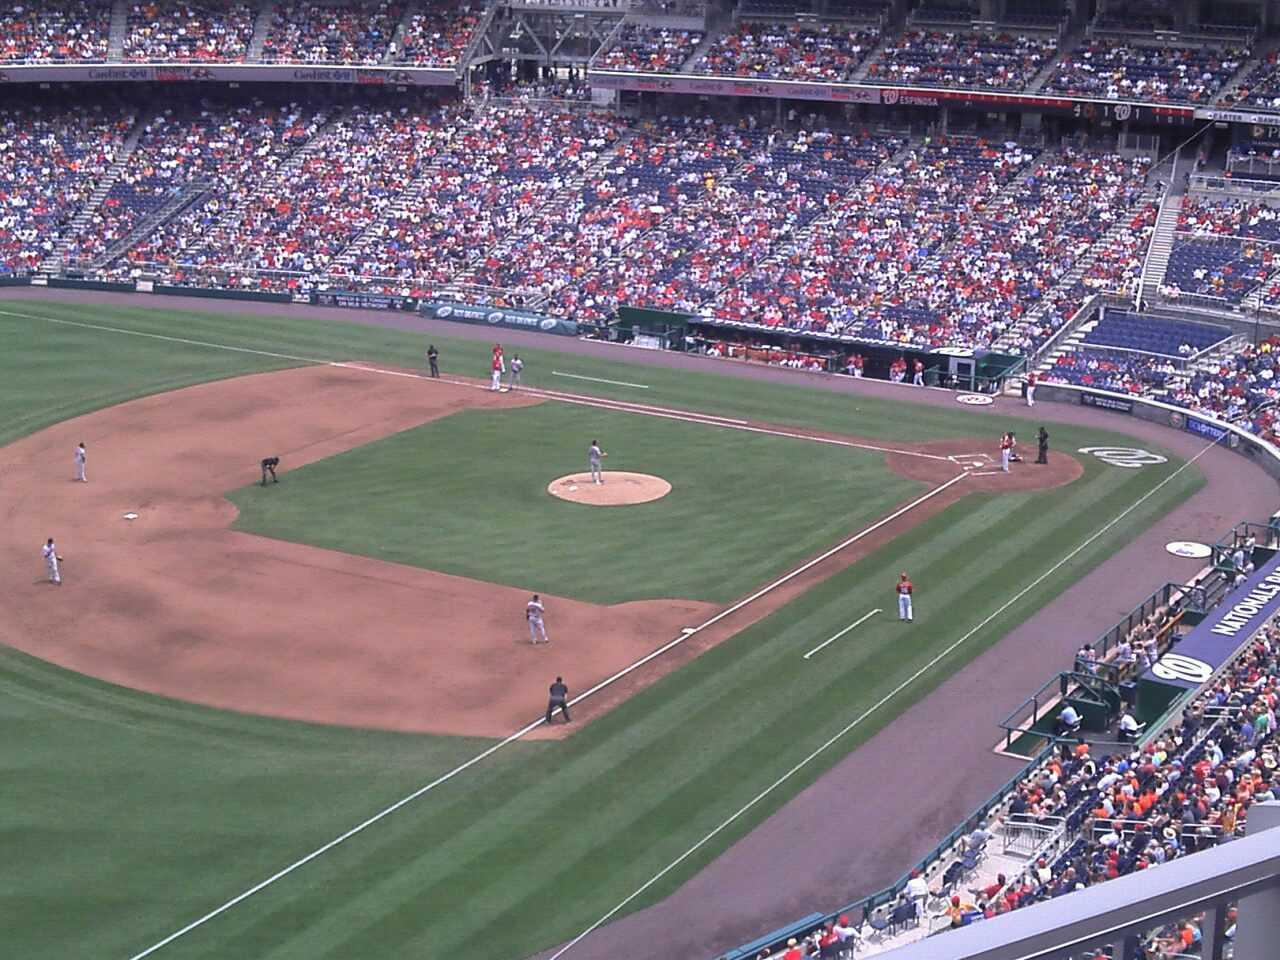 Nationals Park Section 303 Row k Seat 3